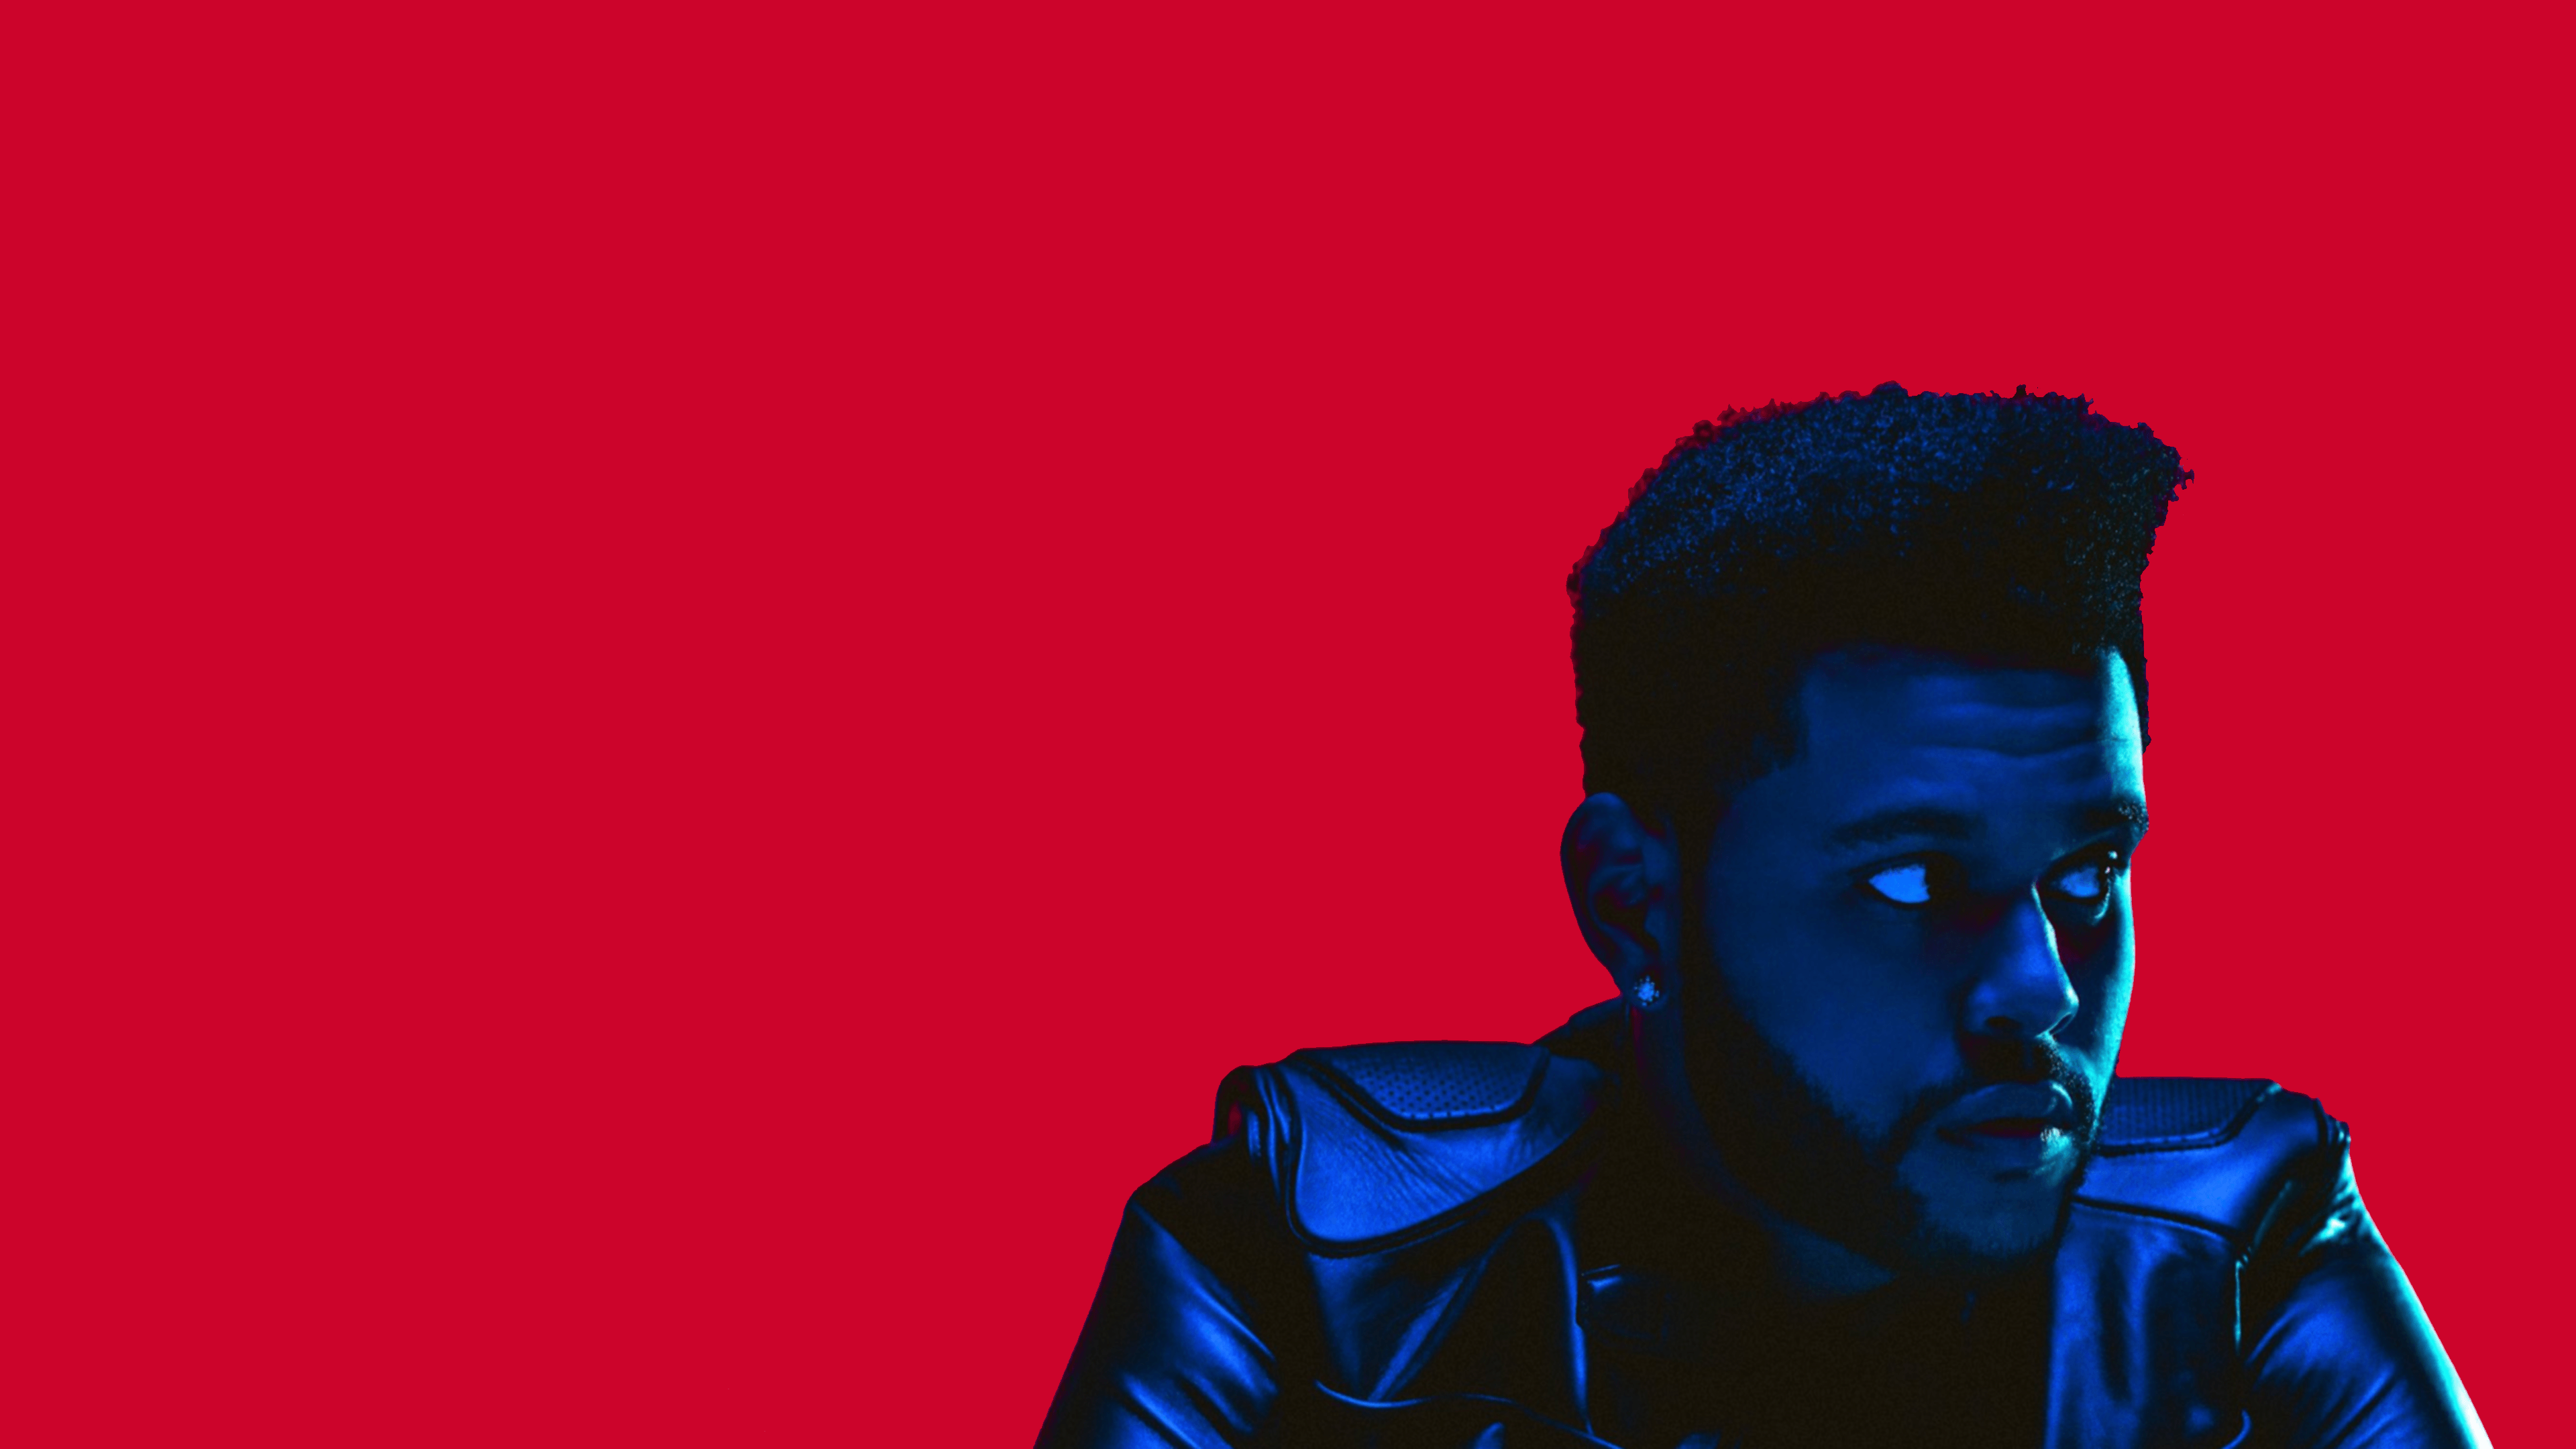 The Weeknd - Starboy Desktop Wallpaper (3840x2160) : TheWeeknd